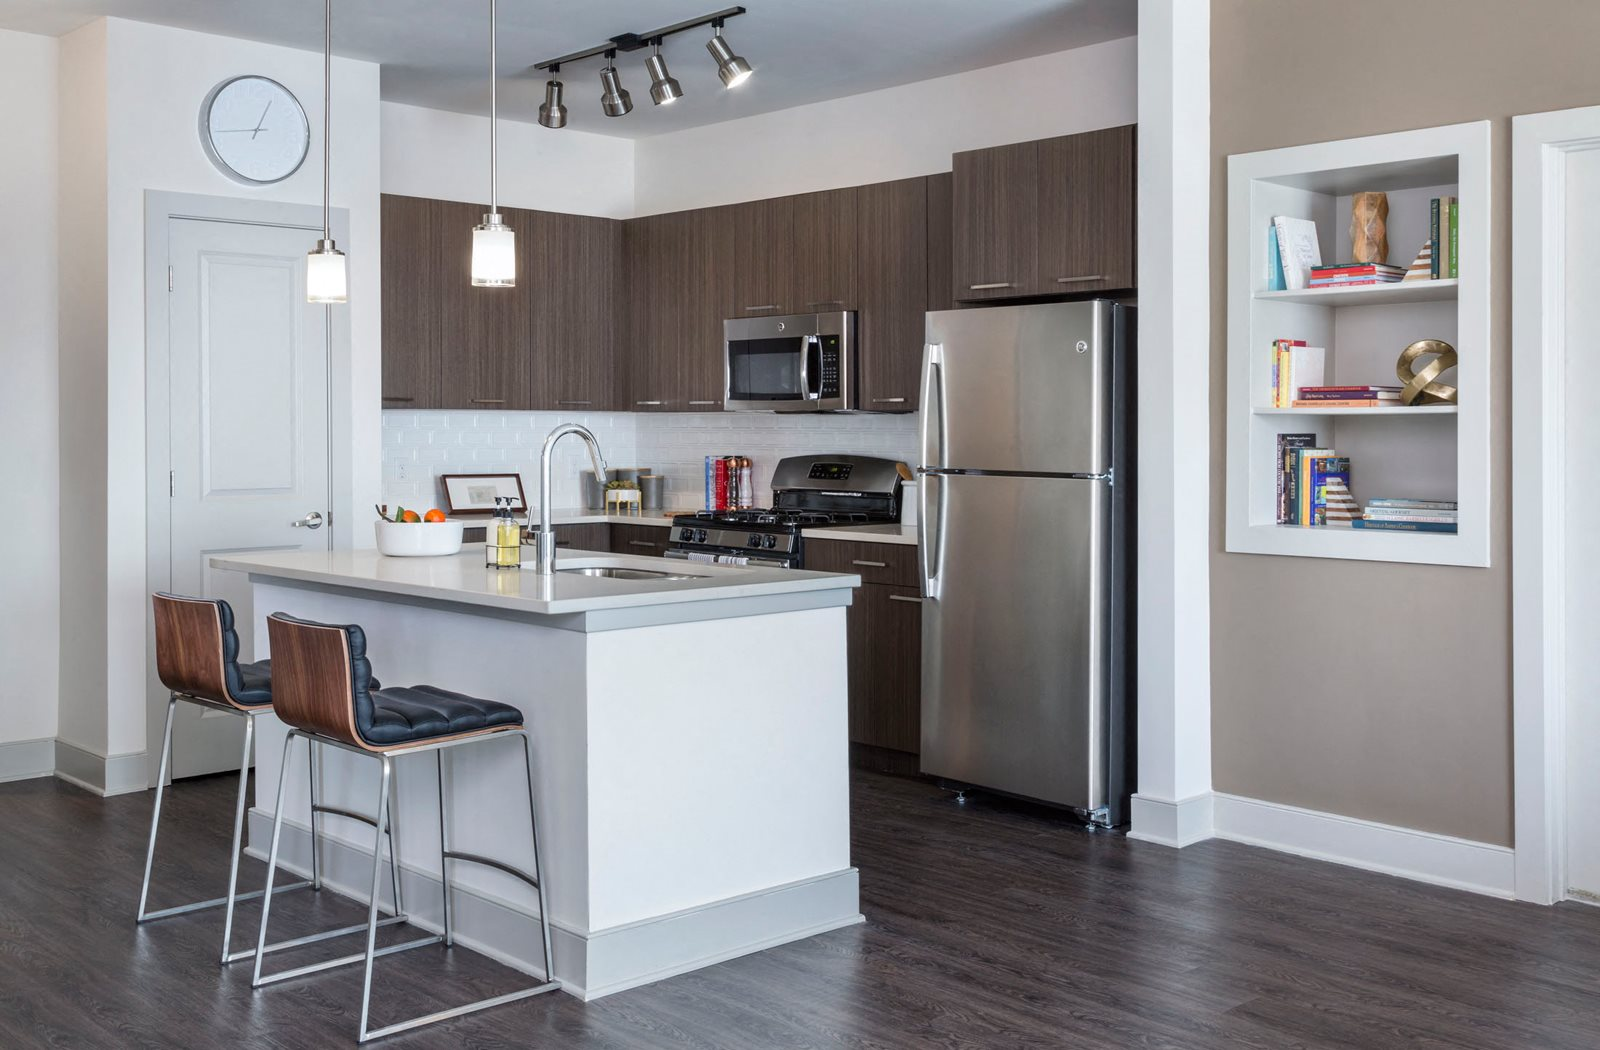 open kitchens for Talia Apartments in Marlborough, MA